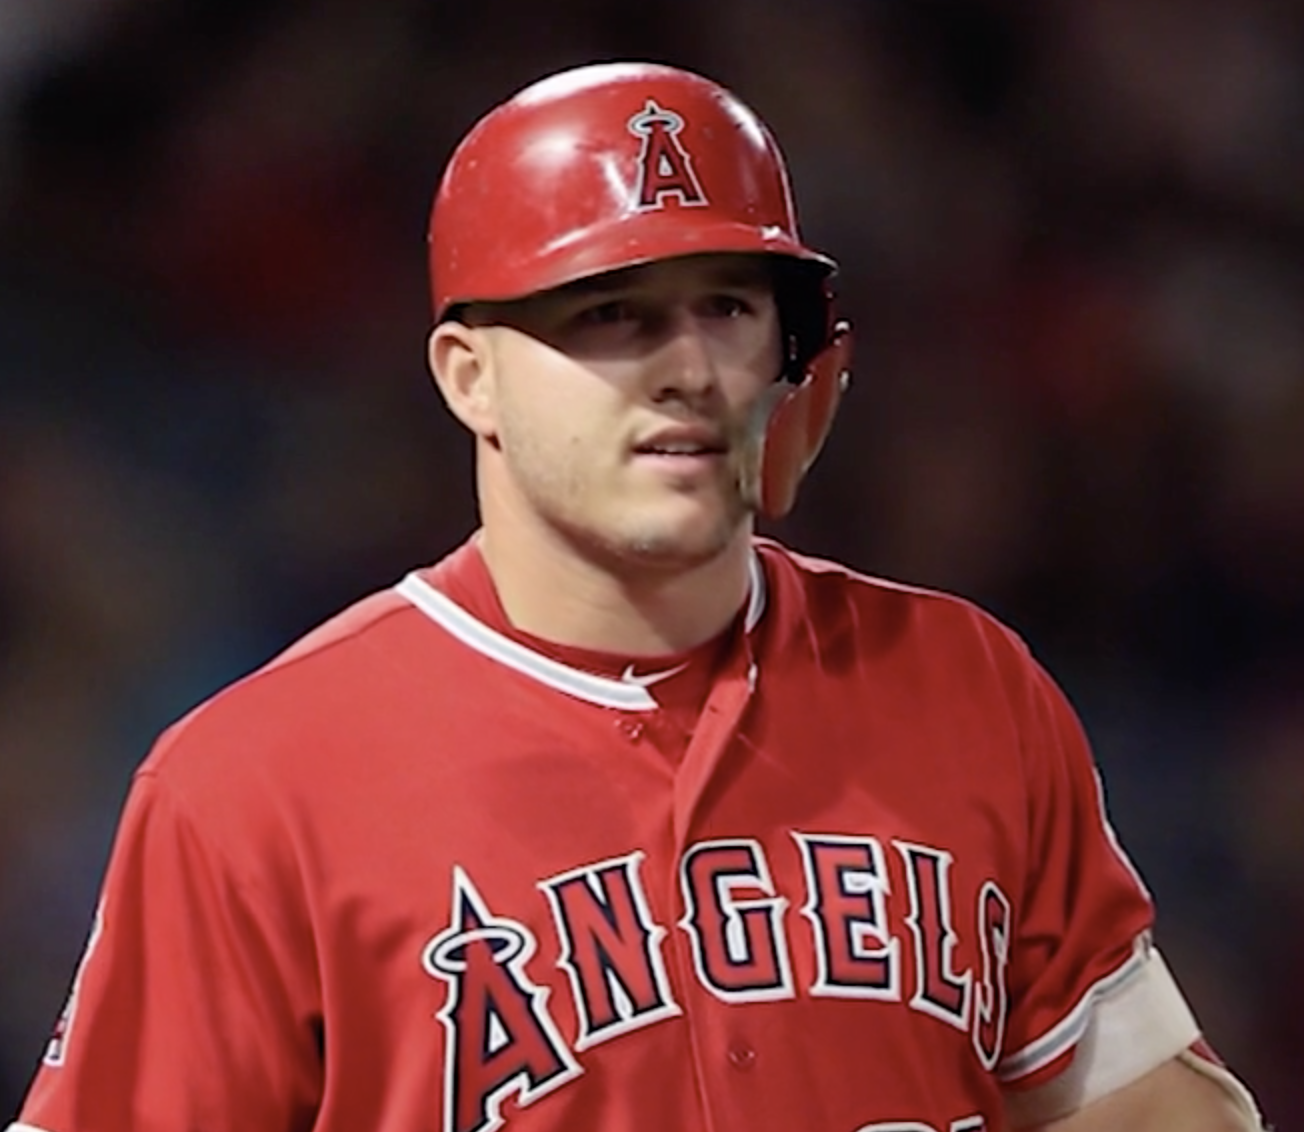 Red Sox CMO on Mike Trout's $430M deal: 'Historic' time in baseball